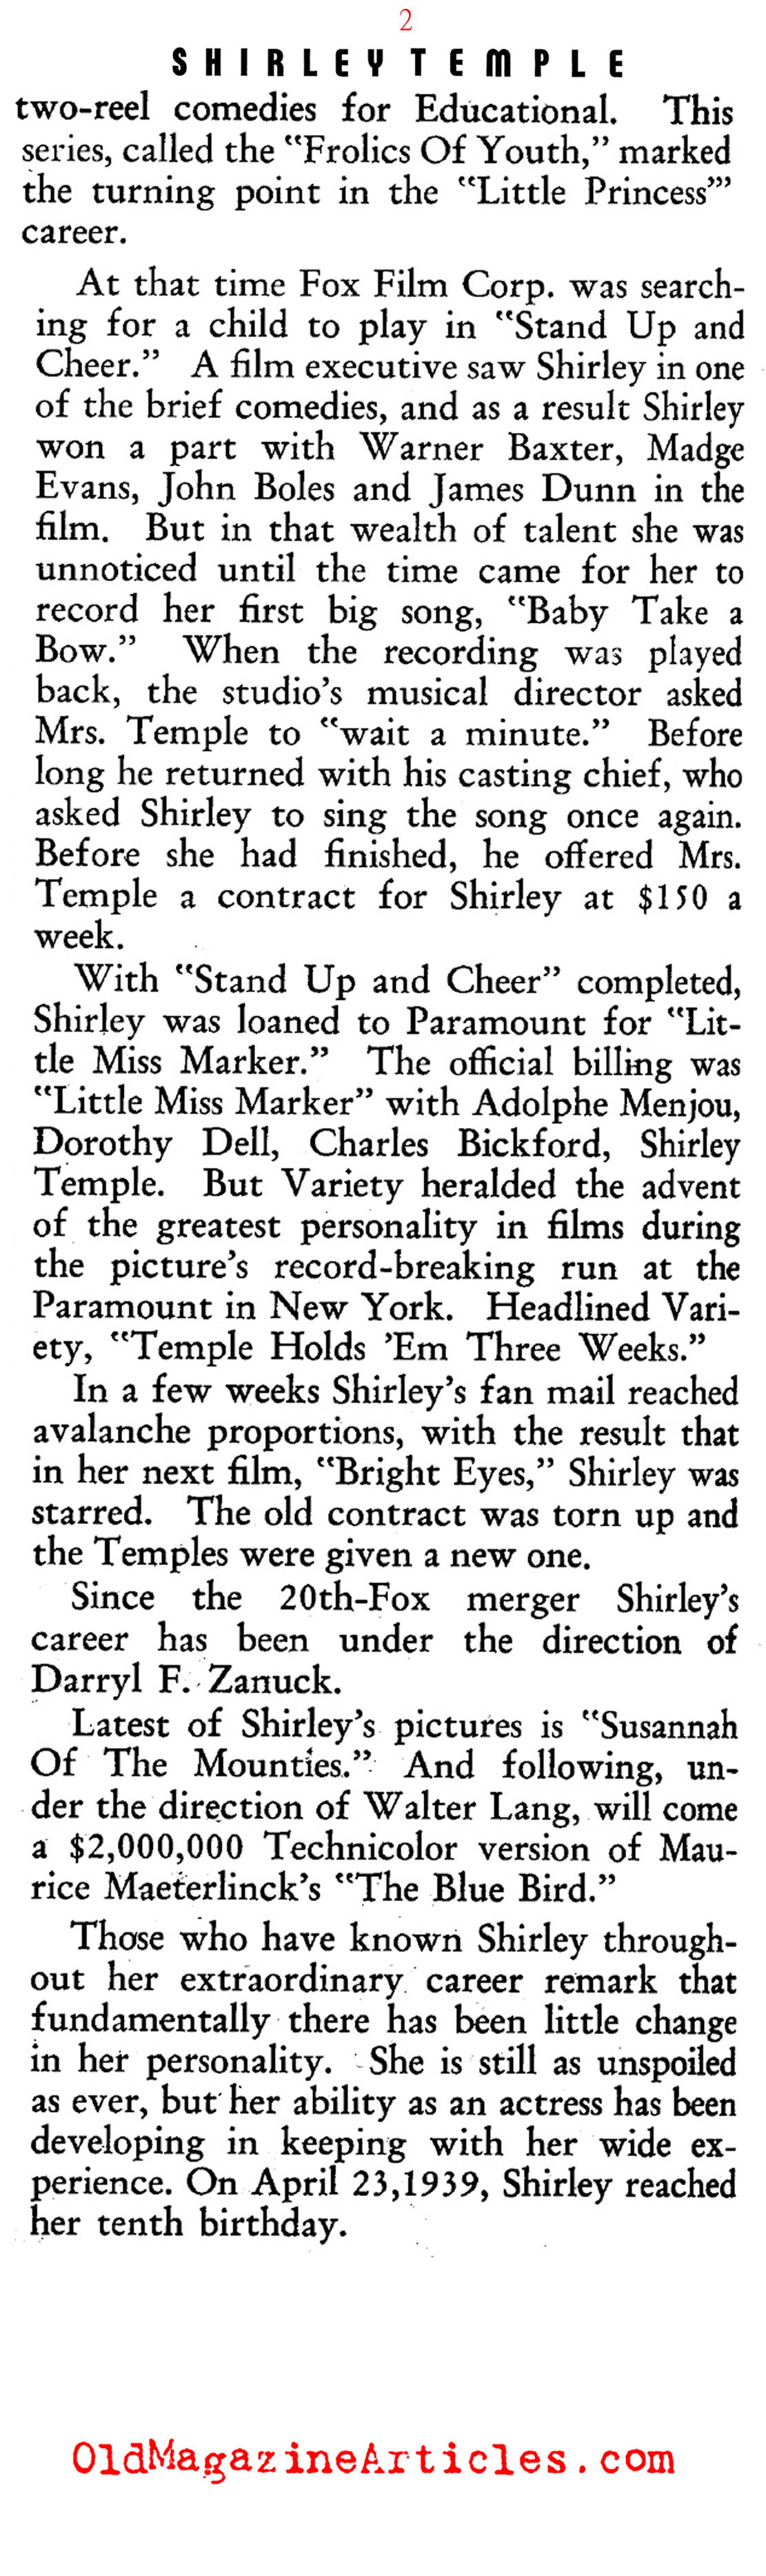 A Profile of Shirley Temple (Film Daily, 1939)